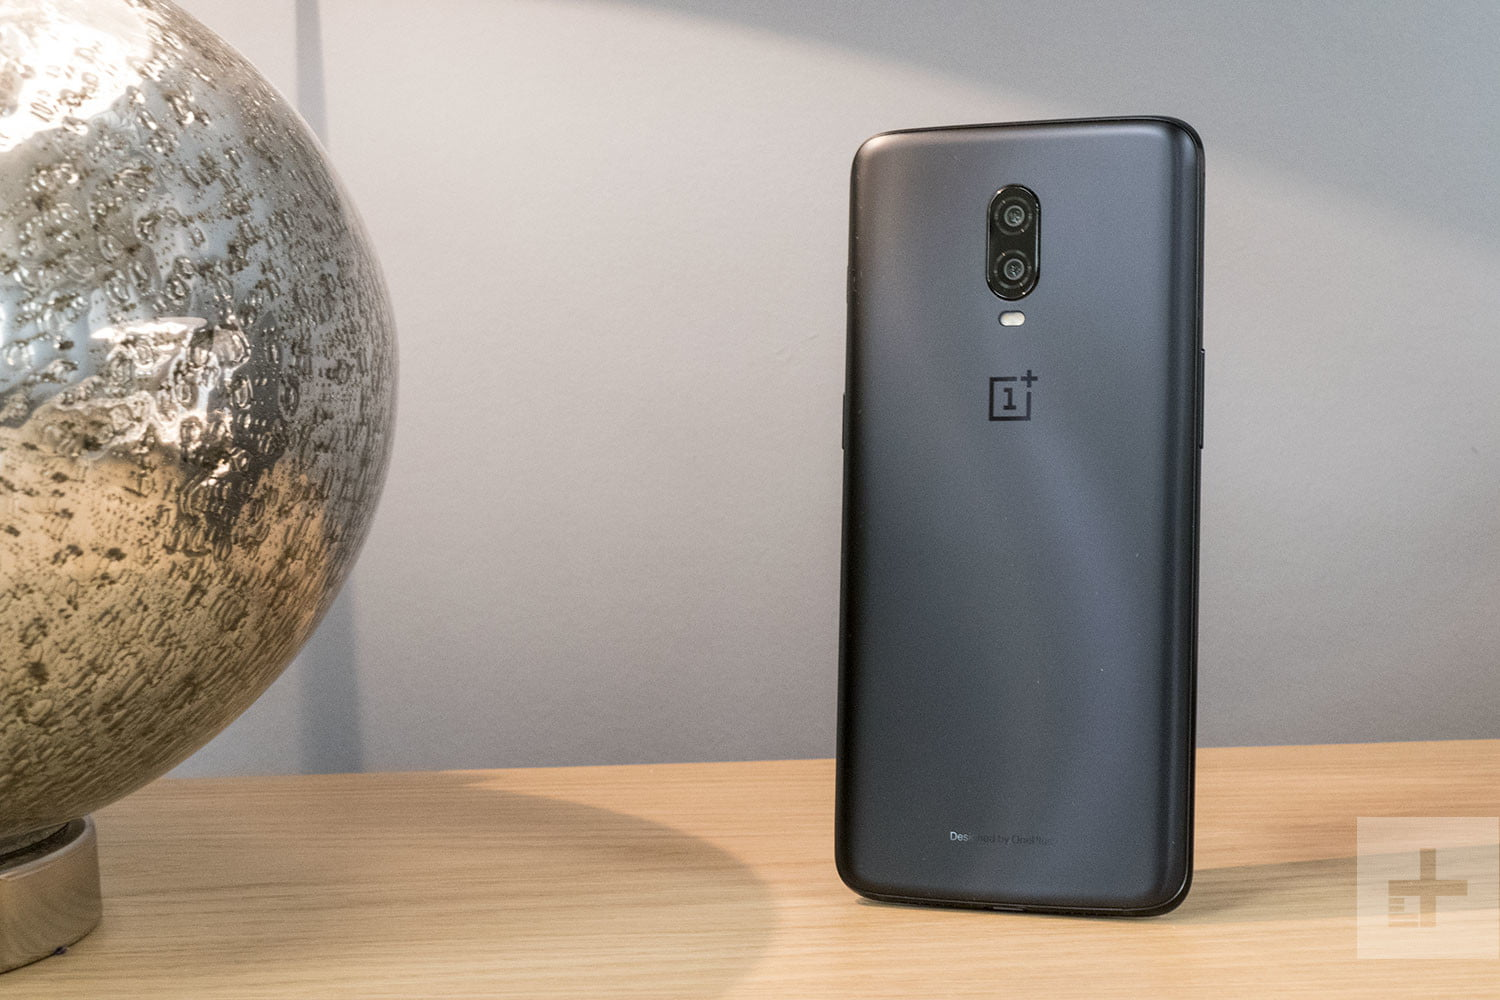 Key Settings You Need To Change On Your Brand New Oneplus 6t